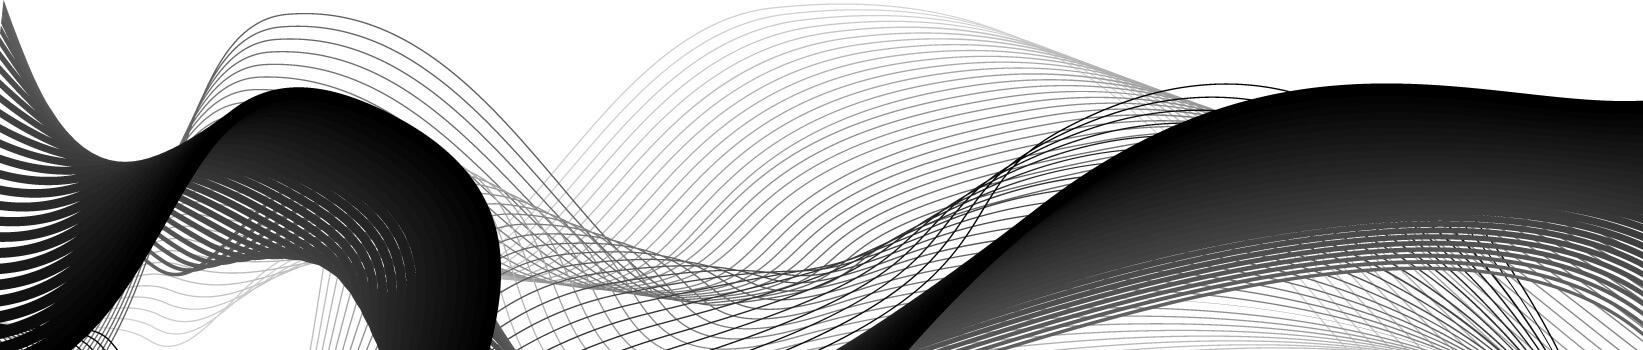 folded mesh abstract computer generated illustration.